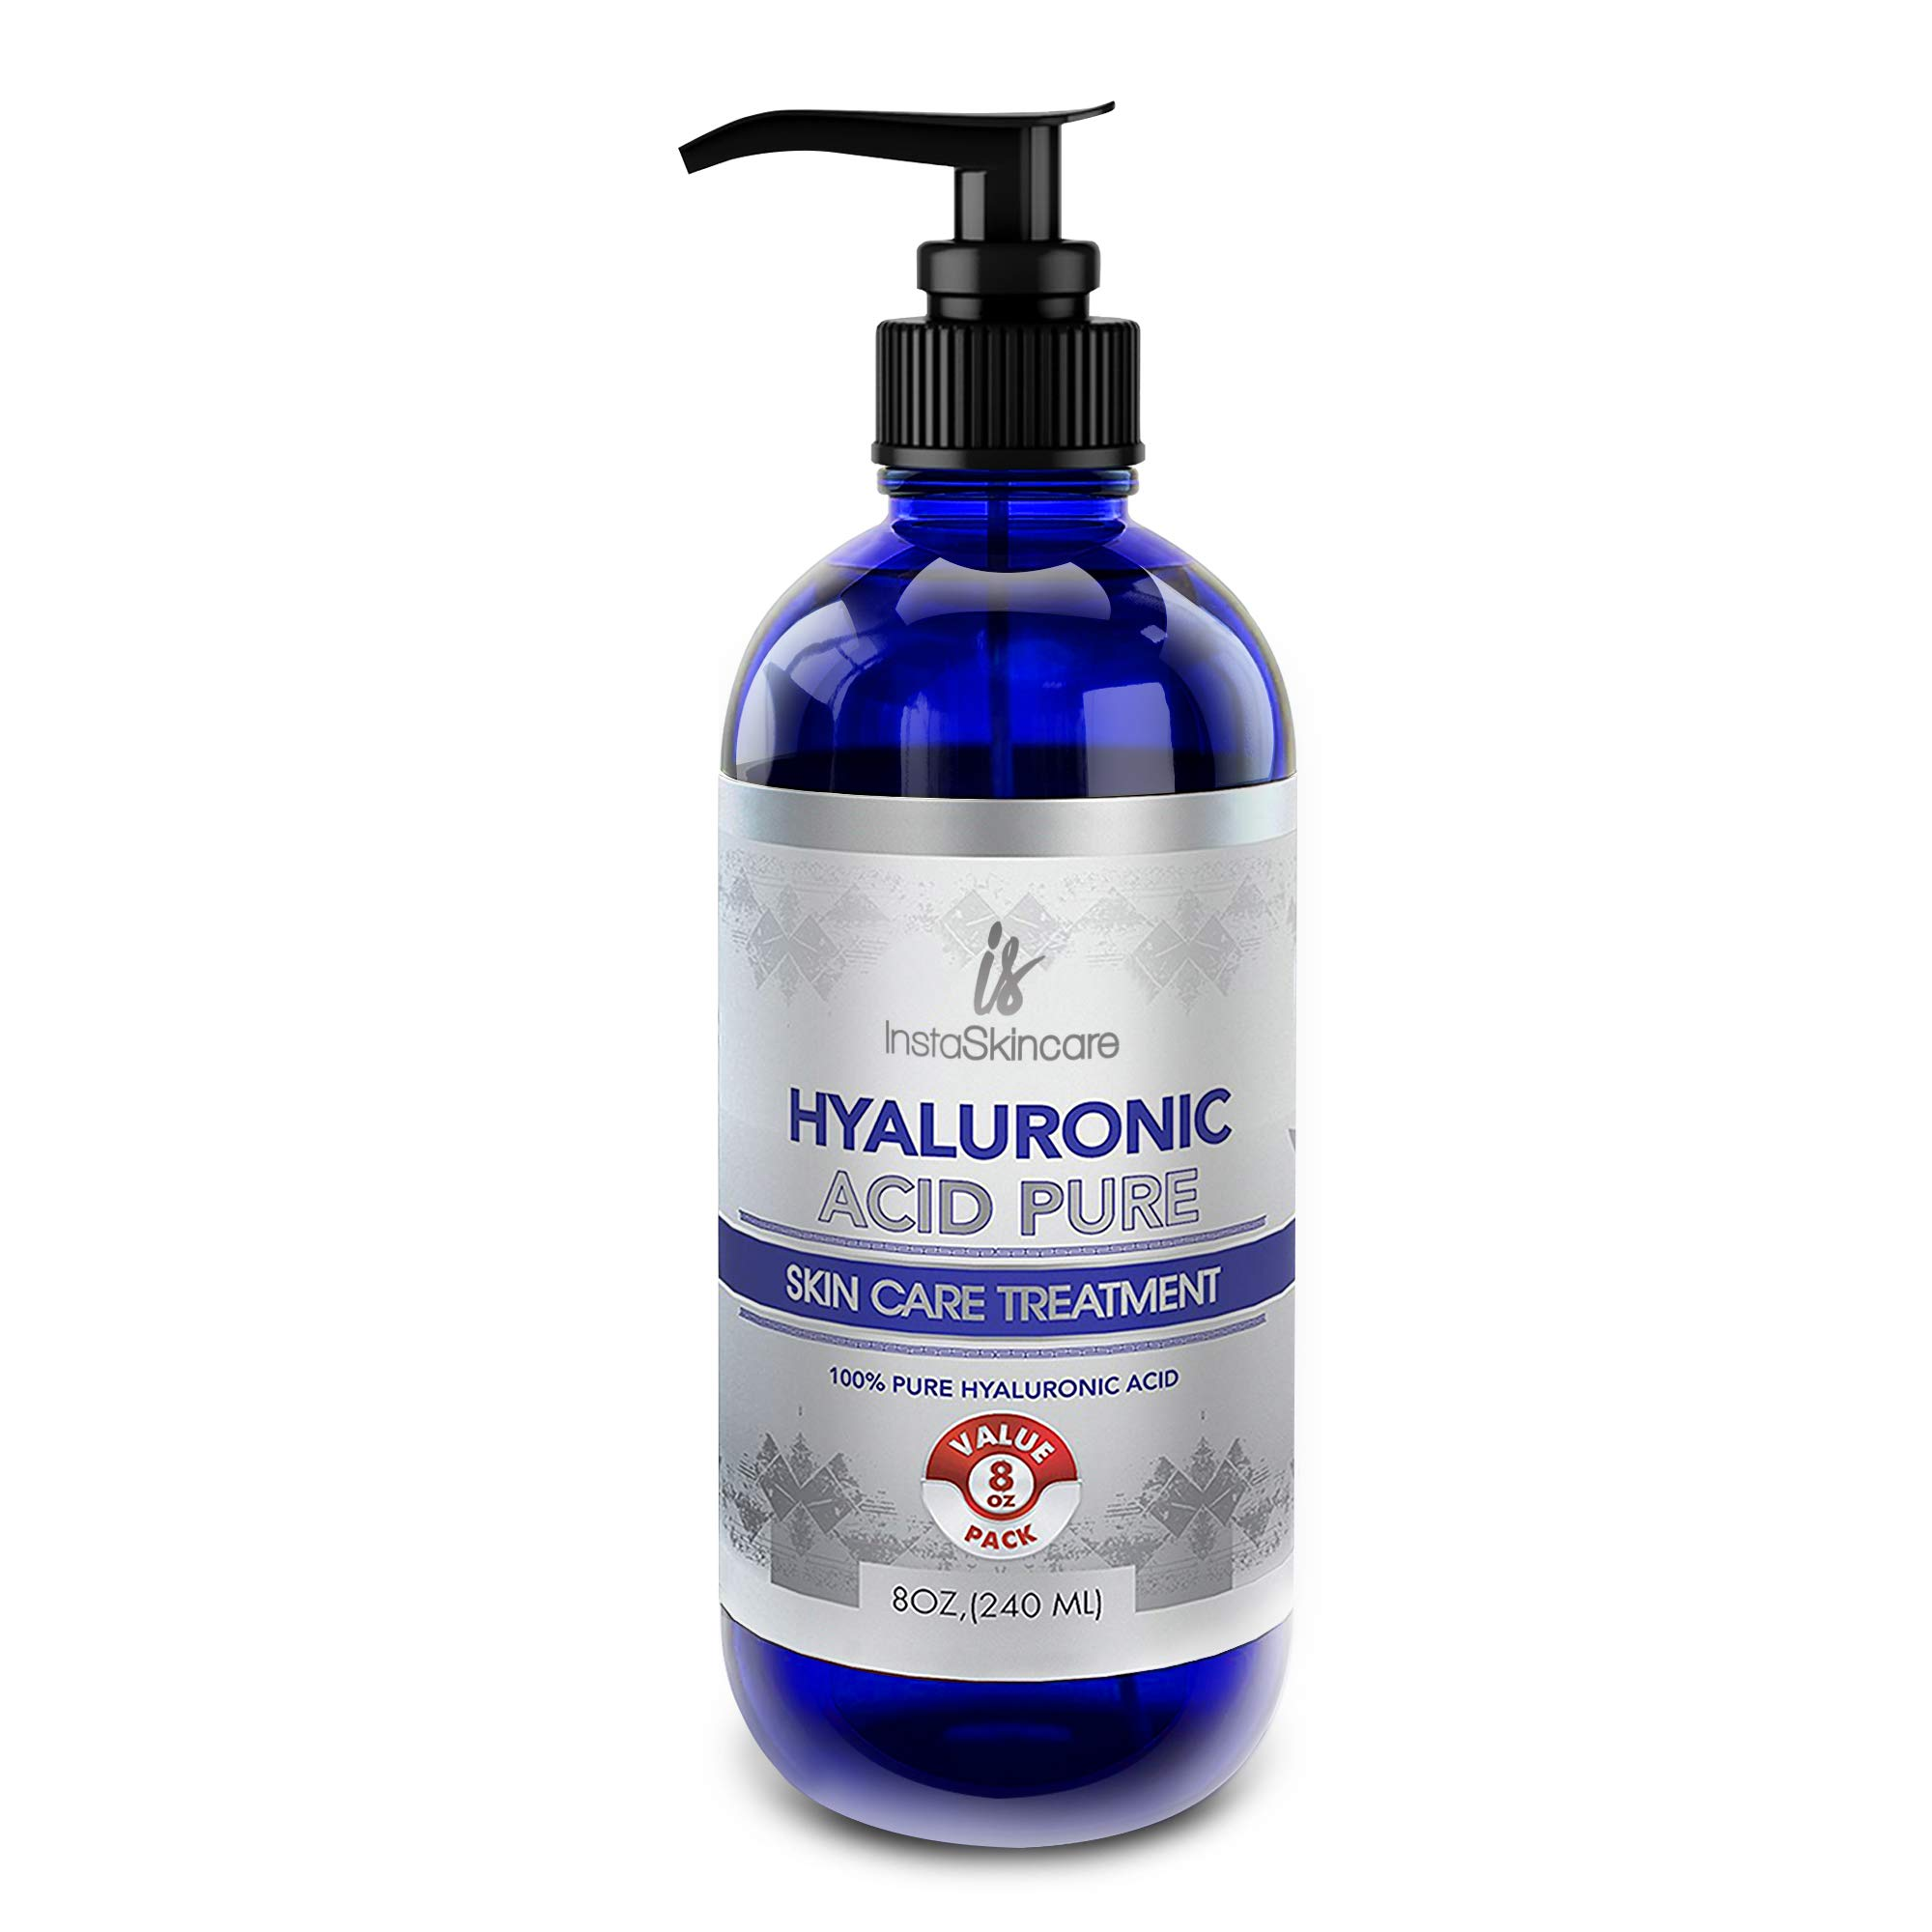 Hyaluronic Acid for Face (8oz) - 100% Pure Medical Quality Clinical Strength Formula - Anti aging formula for your skin